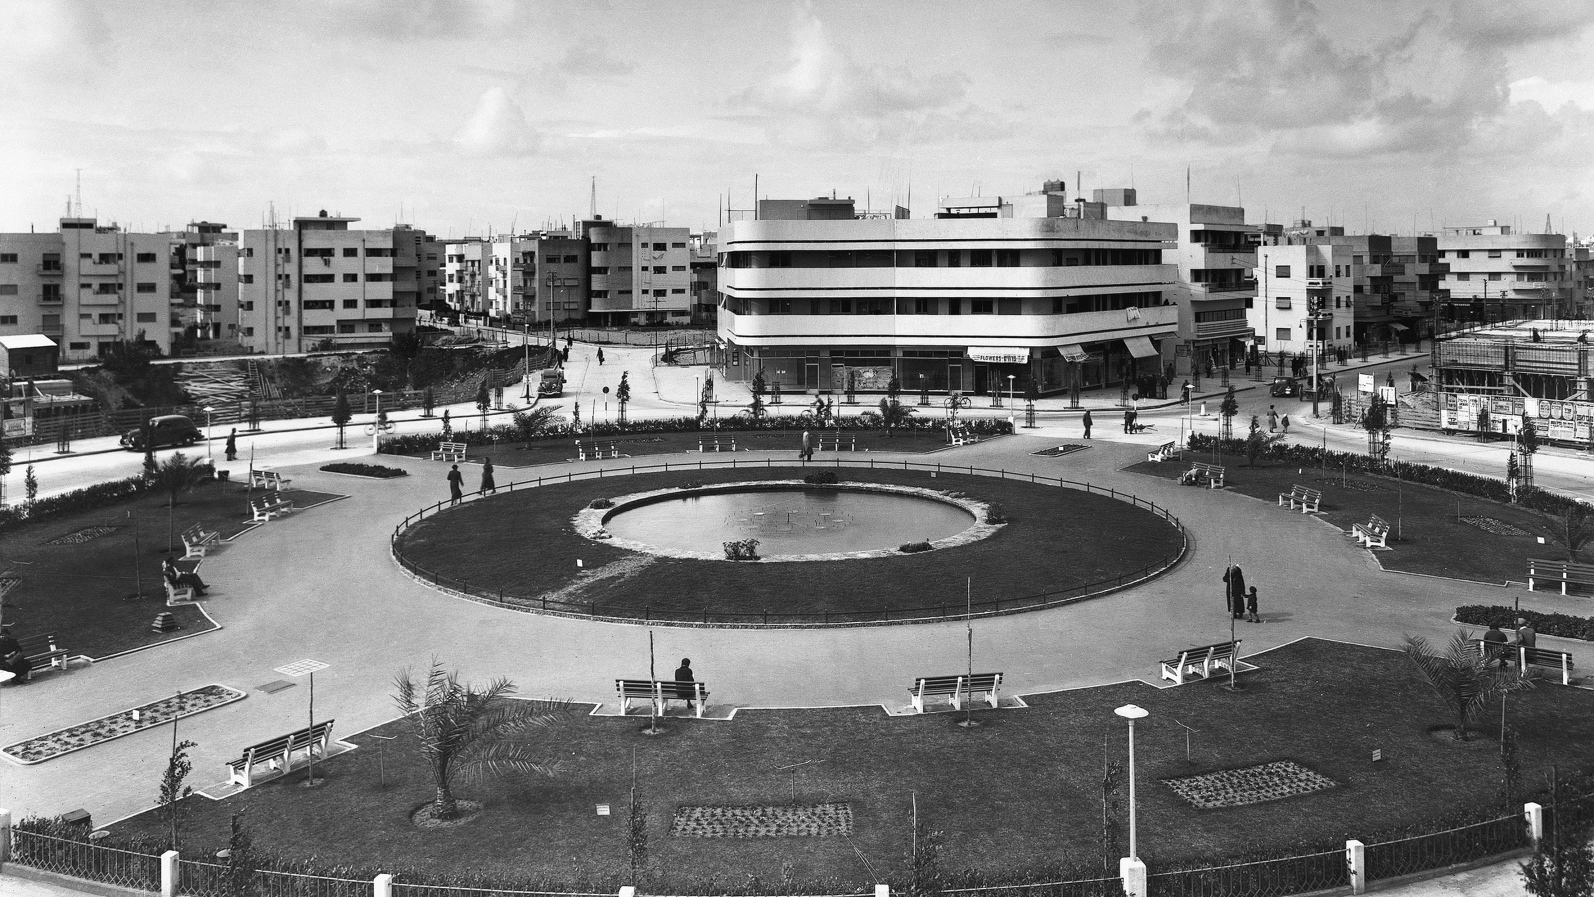 This Bauhaus building at Tzina Square (now Dizengoff Square) in Tel Aviv, built in 1937 by Genia Averbuch, is now The Cinema boutique hotel. Photo from the Library of Congress, G. Eric and Edith Matson Photograph Collection